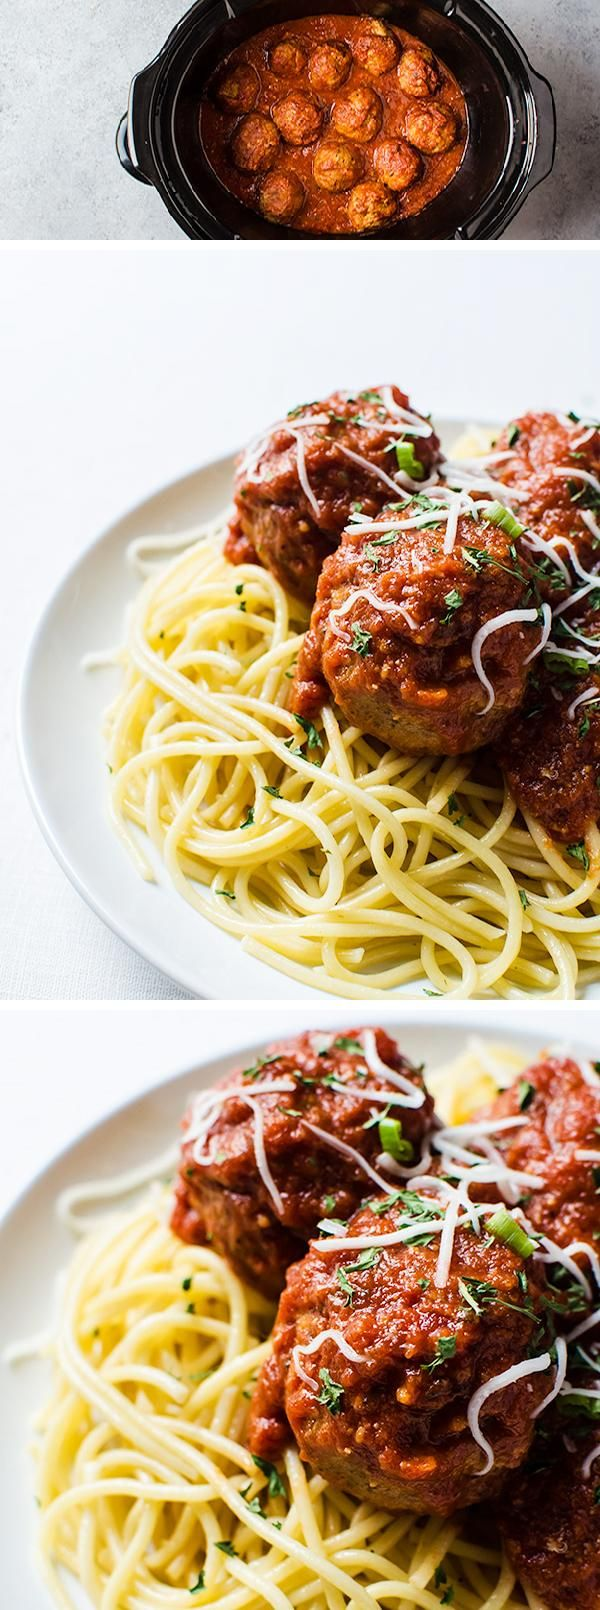 These easy SLOW COOKER TURKEY MEATBALLS are a deliciously easy weeknight dinner…